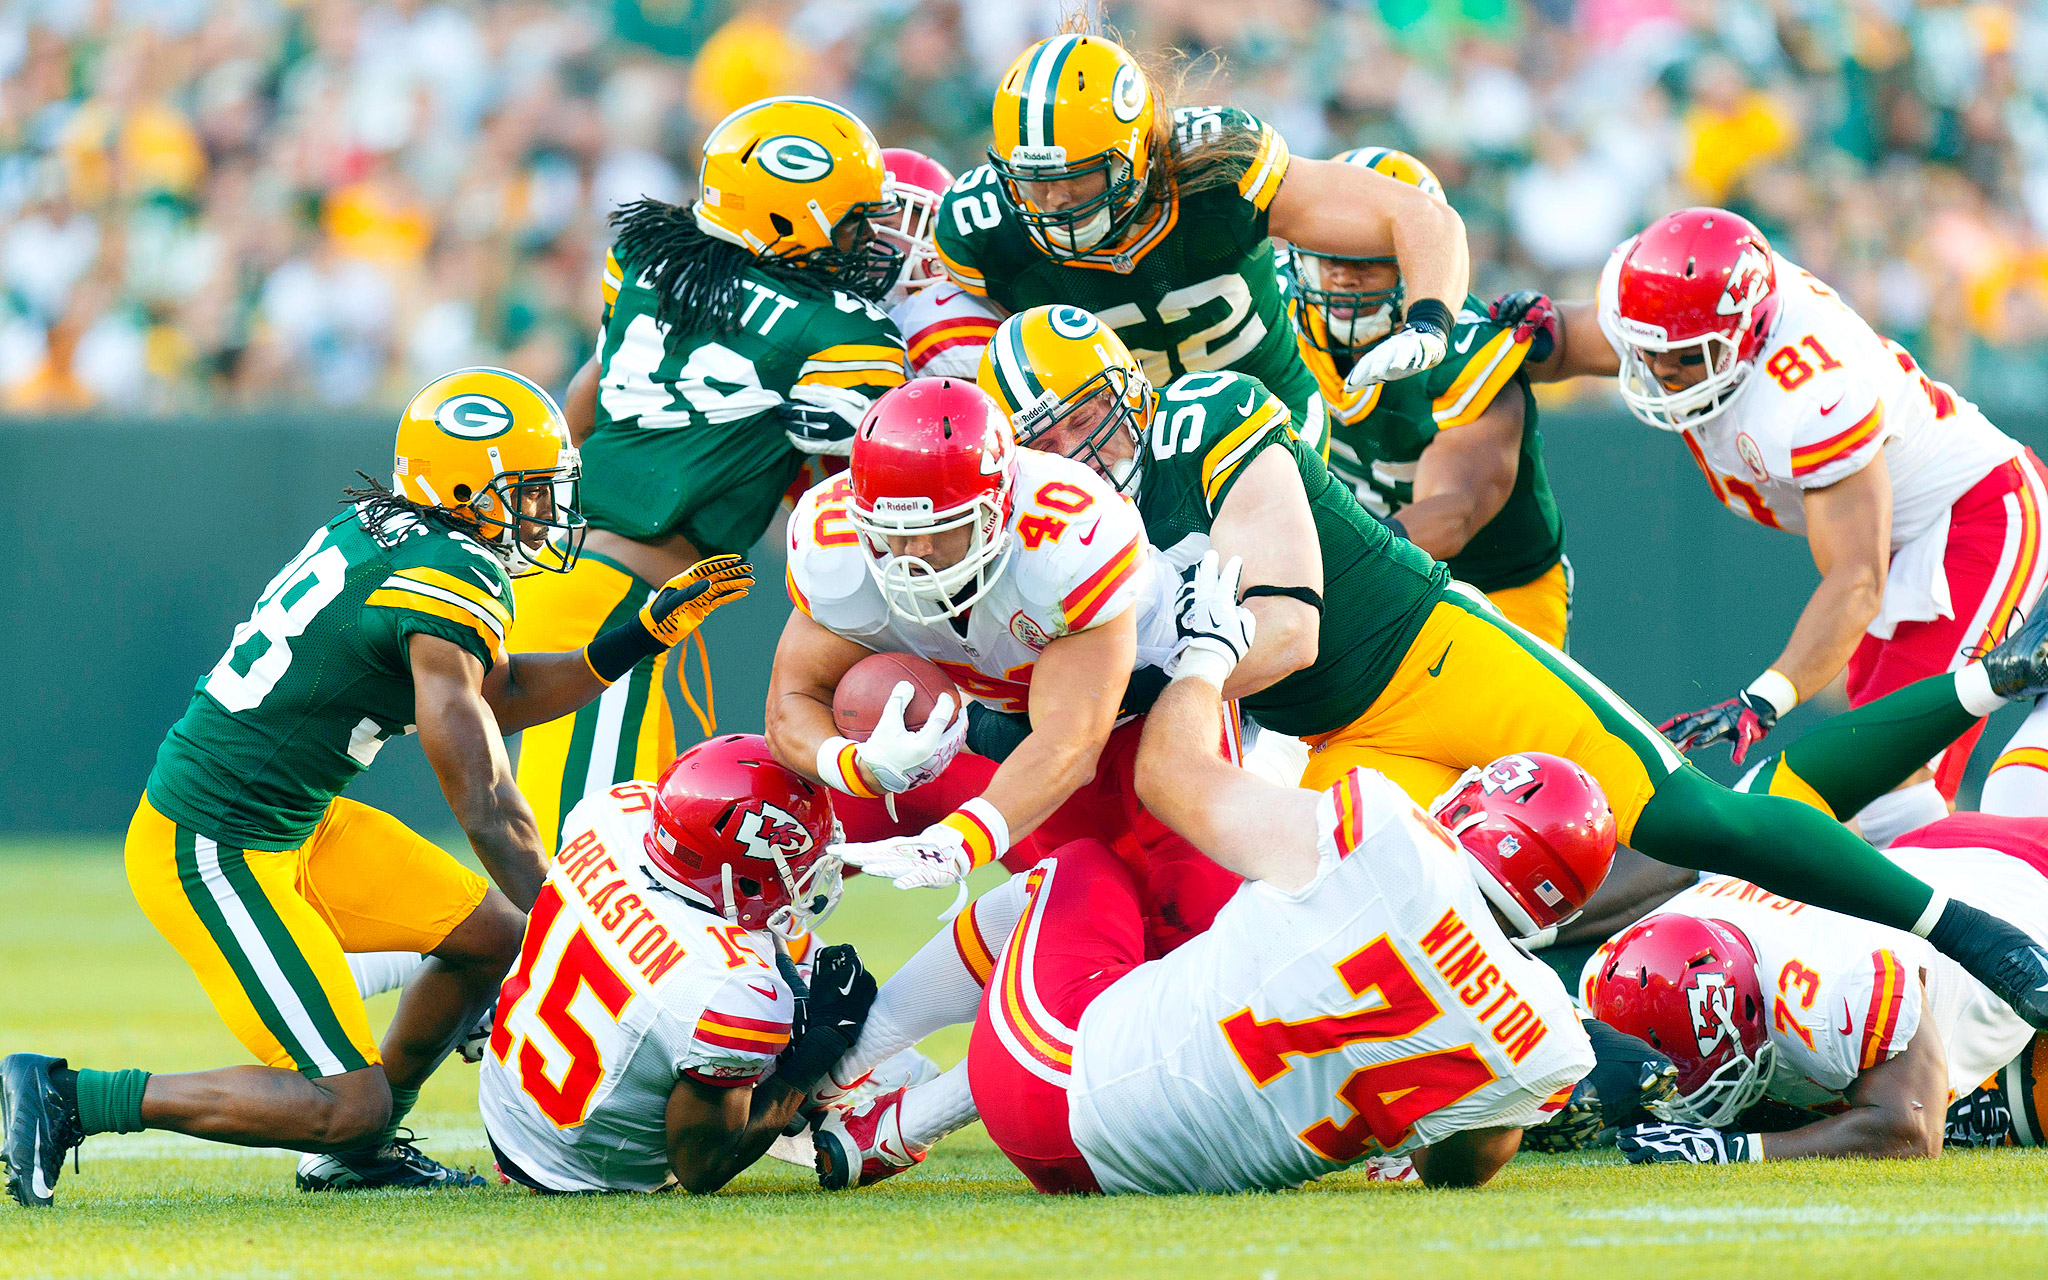 Packers vs Chiefs